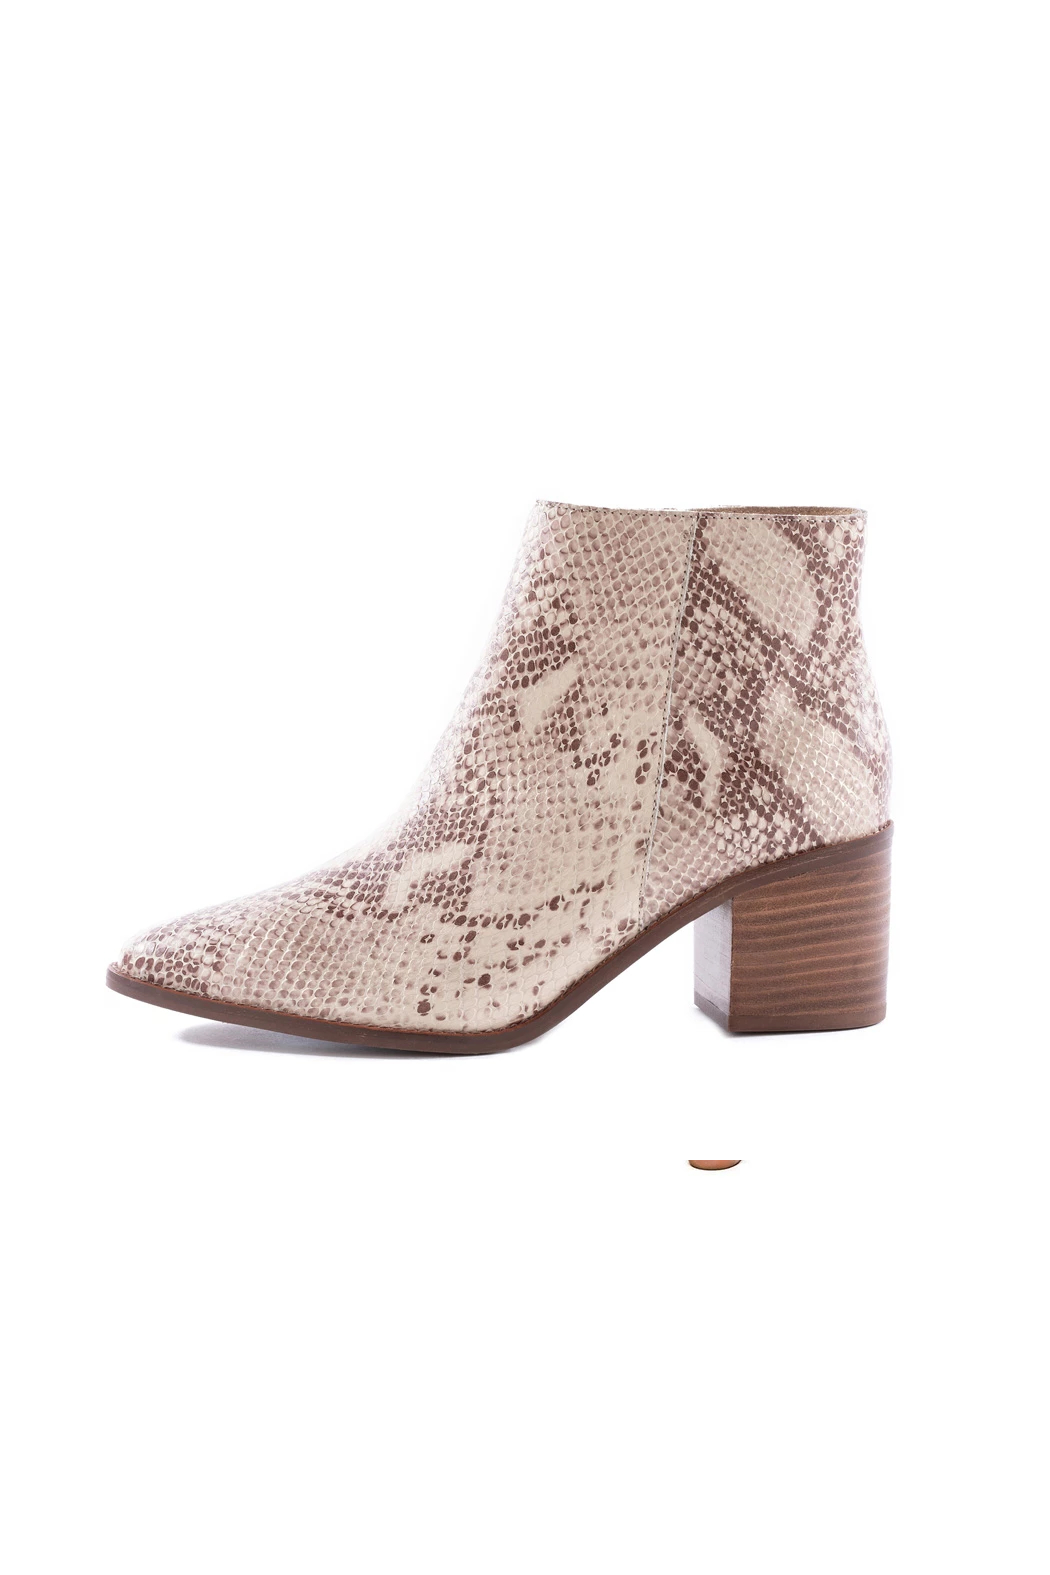 Seychelles For The Occasion Bootie - Main Image